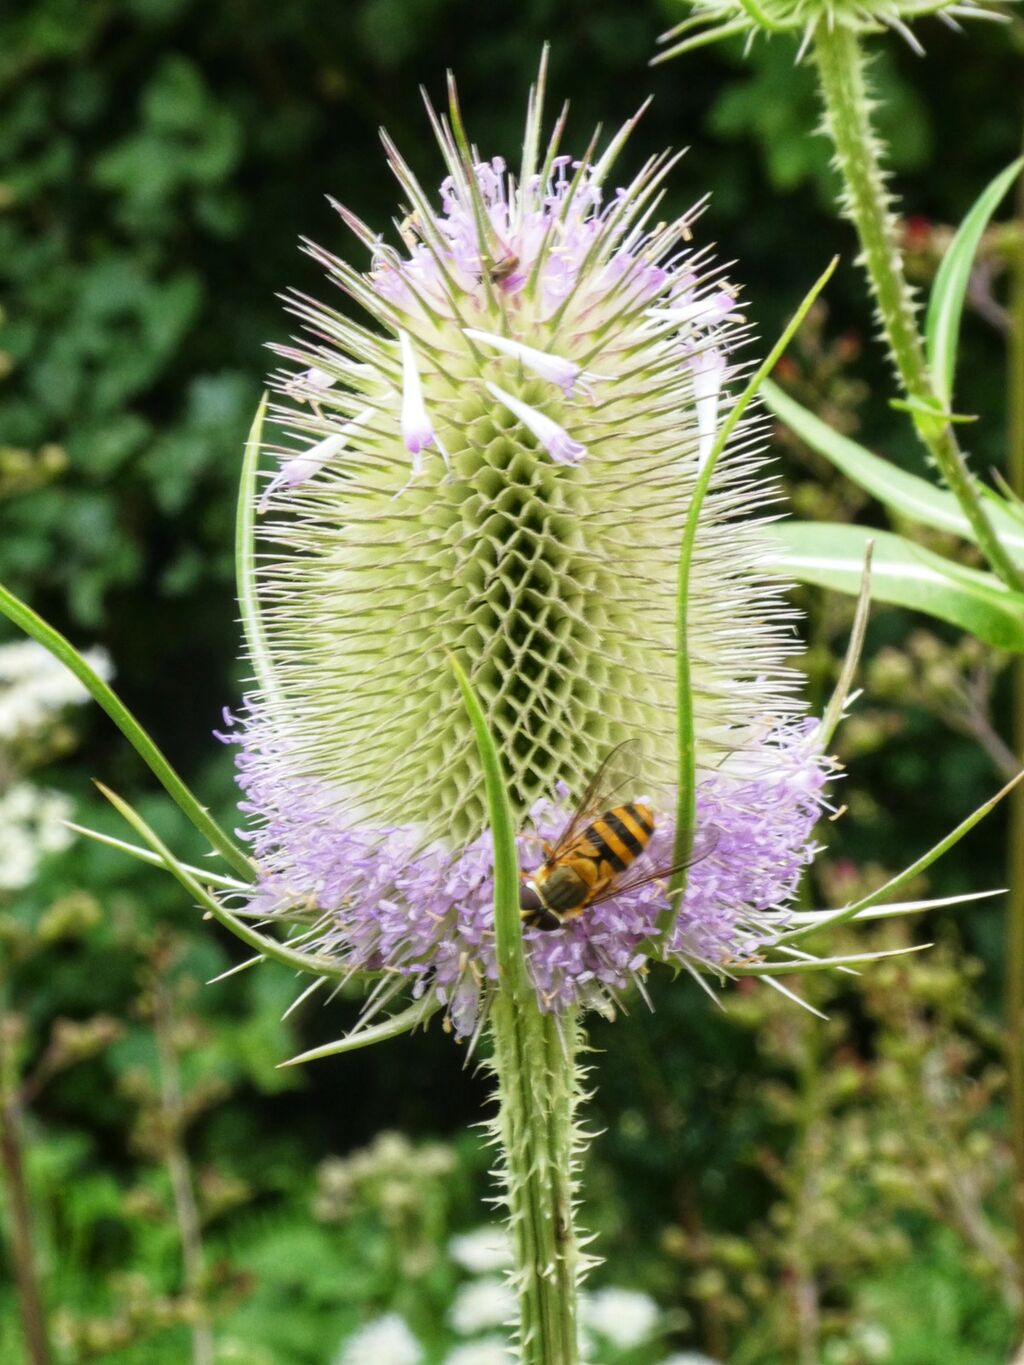 Teasel at Adderbury Lakes